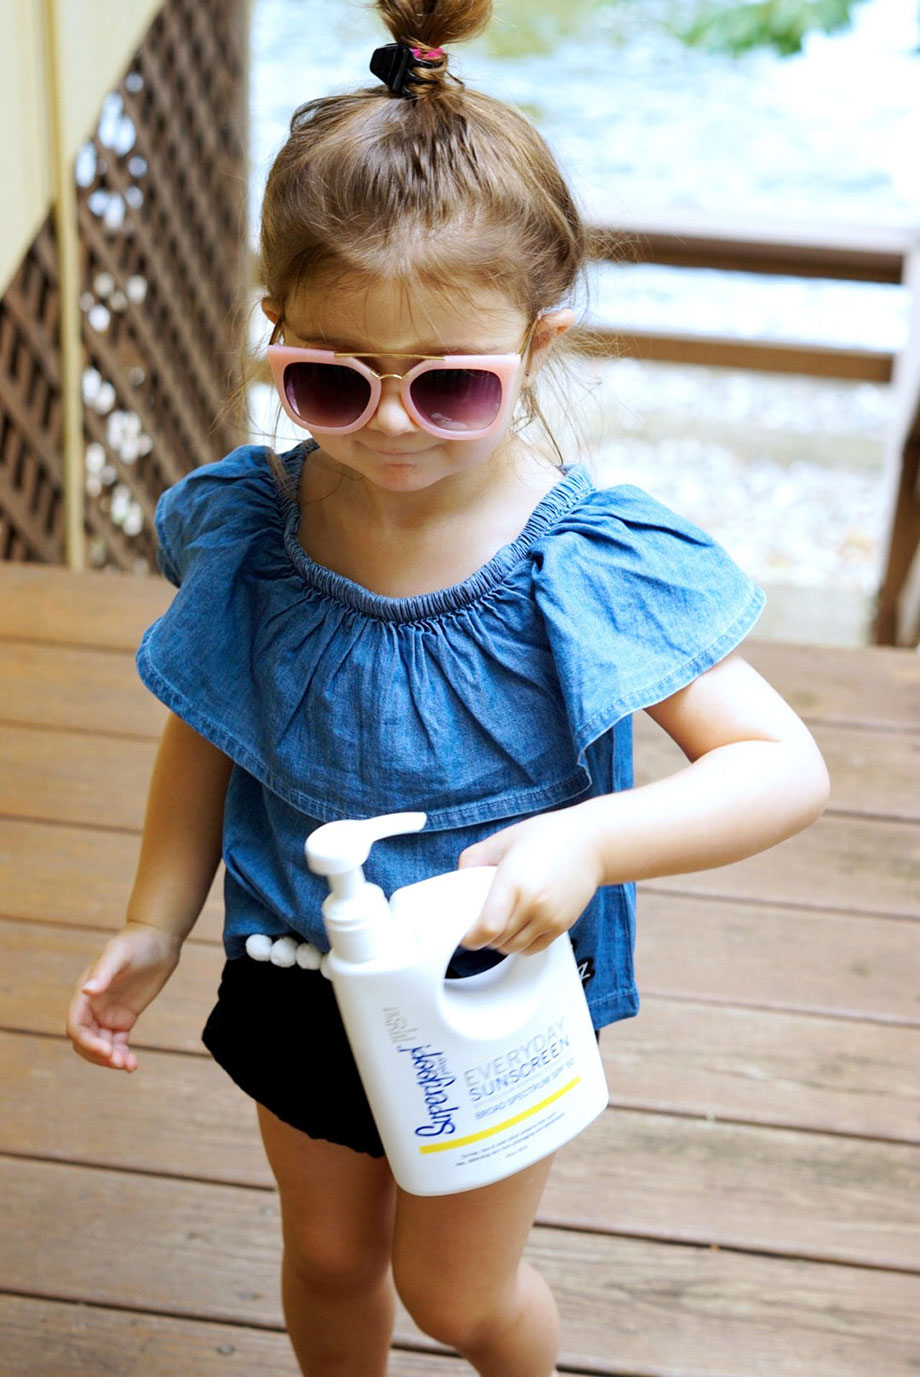 A little girl wearing sunglasses carries SuperGoop sunscreen lotion.